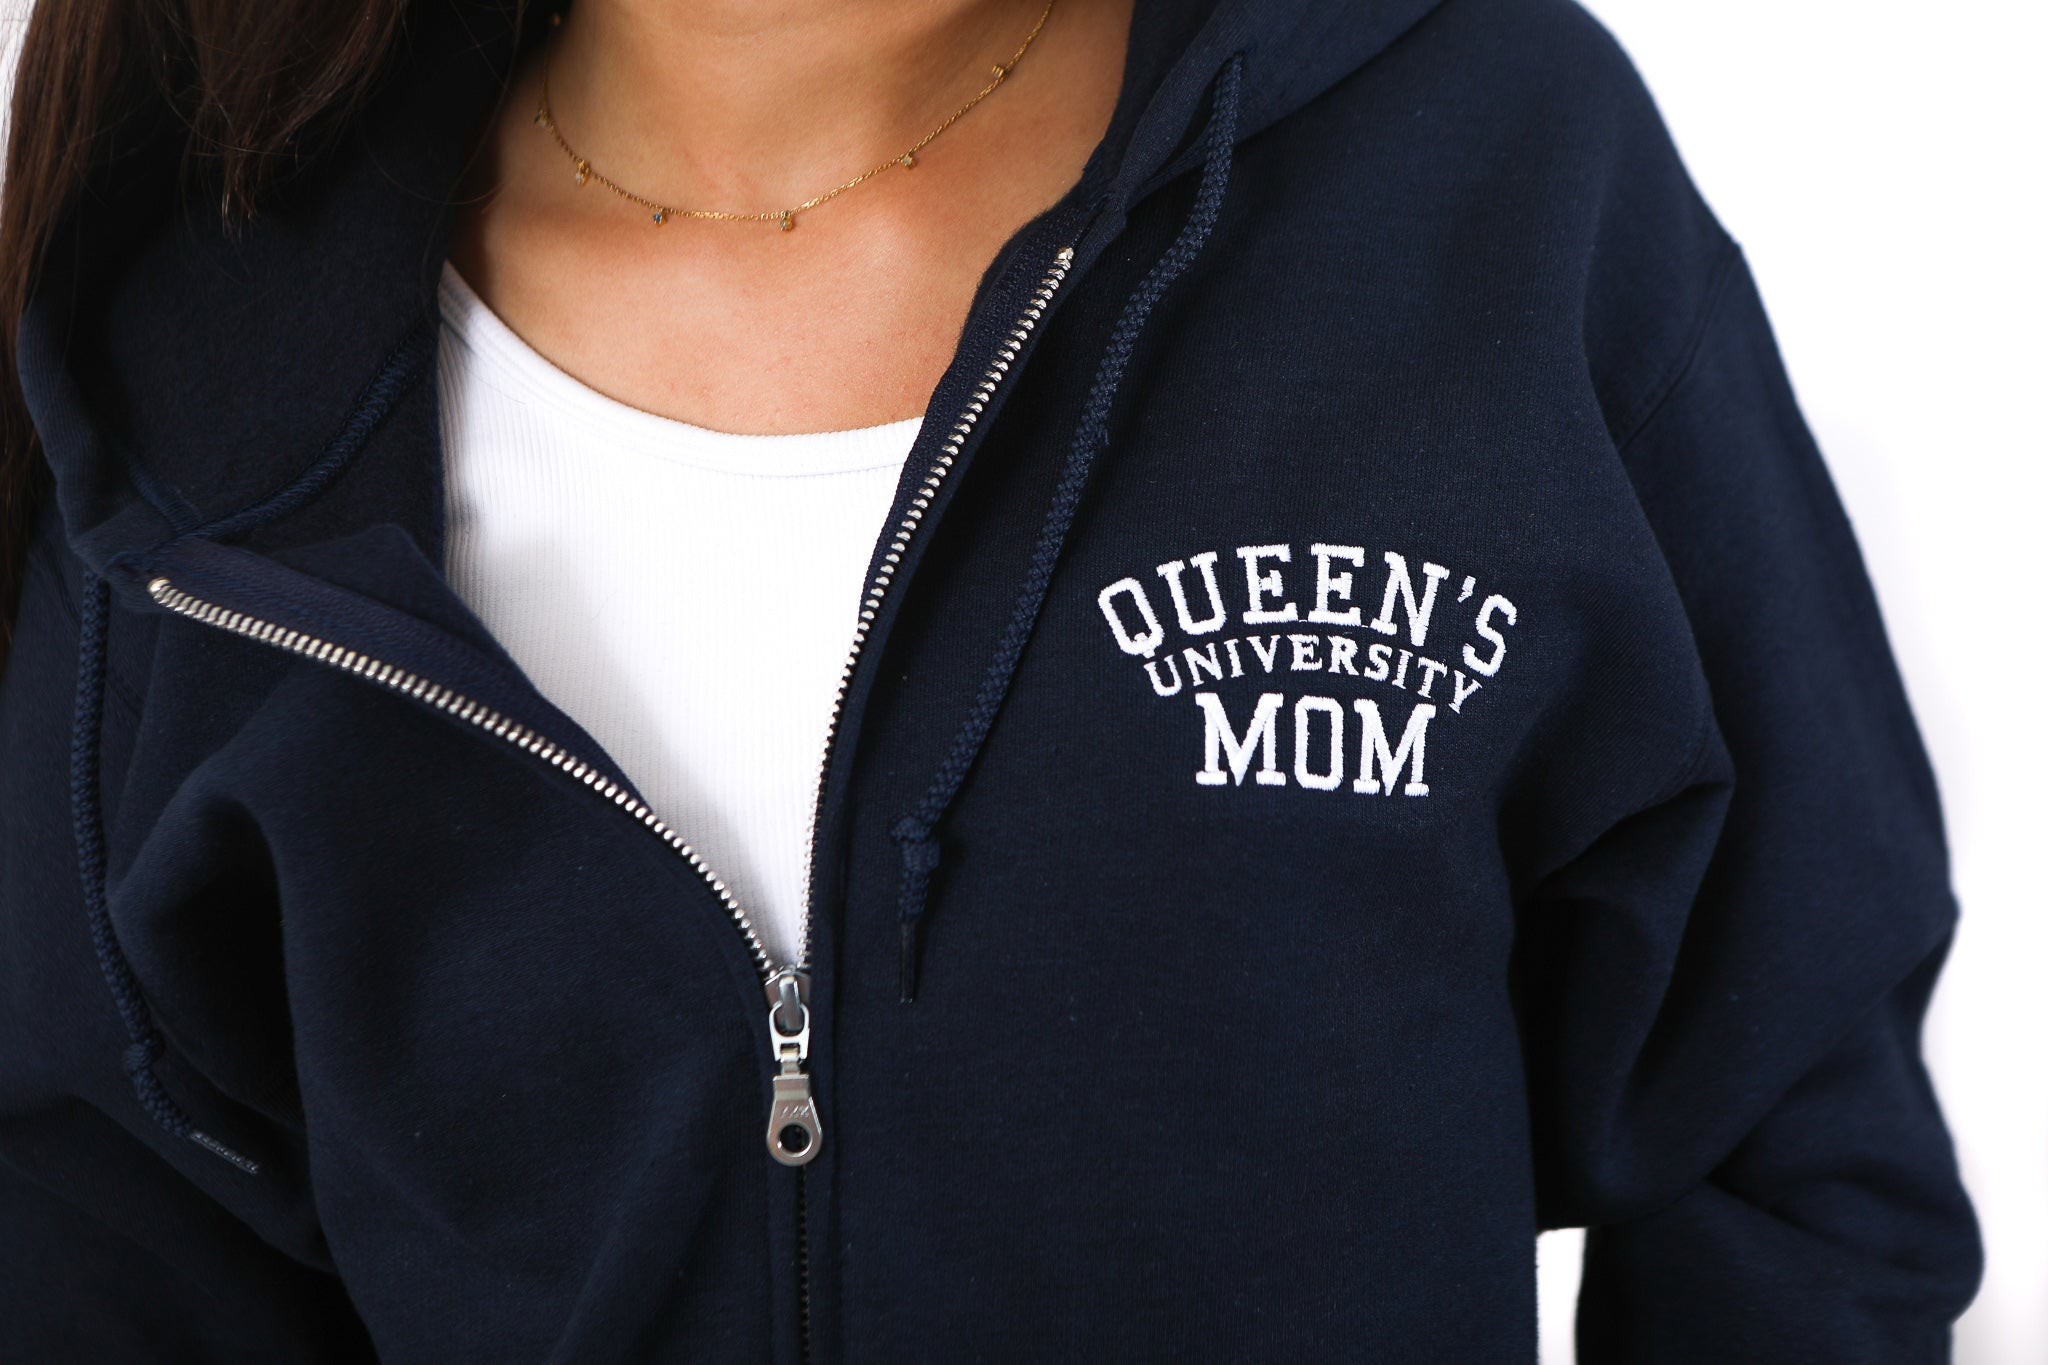 Close up of Queen's Mom logo